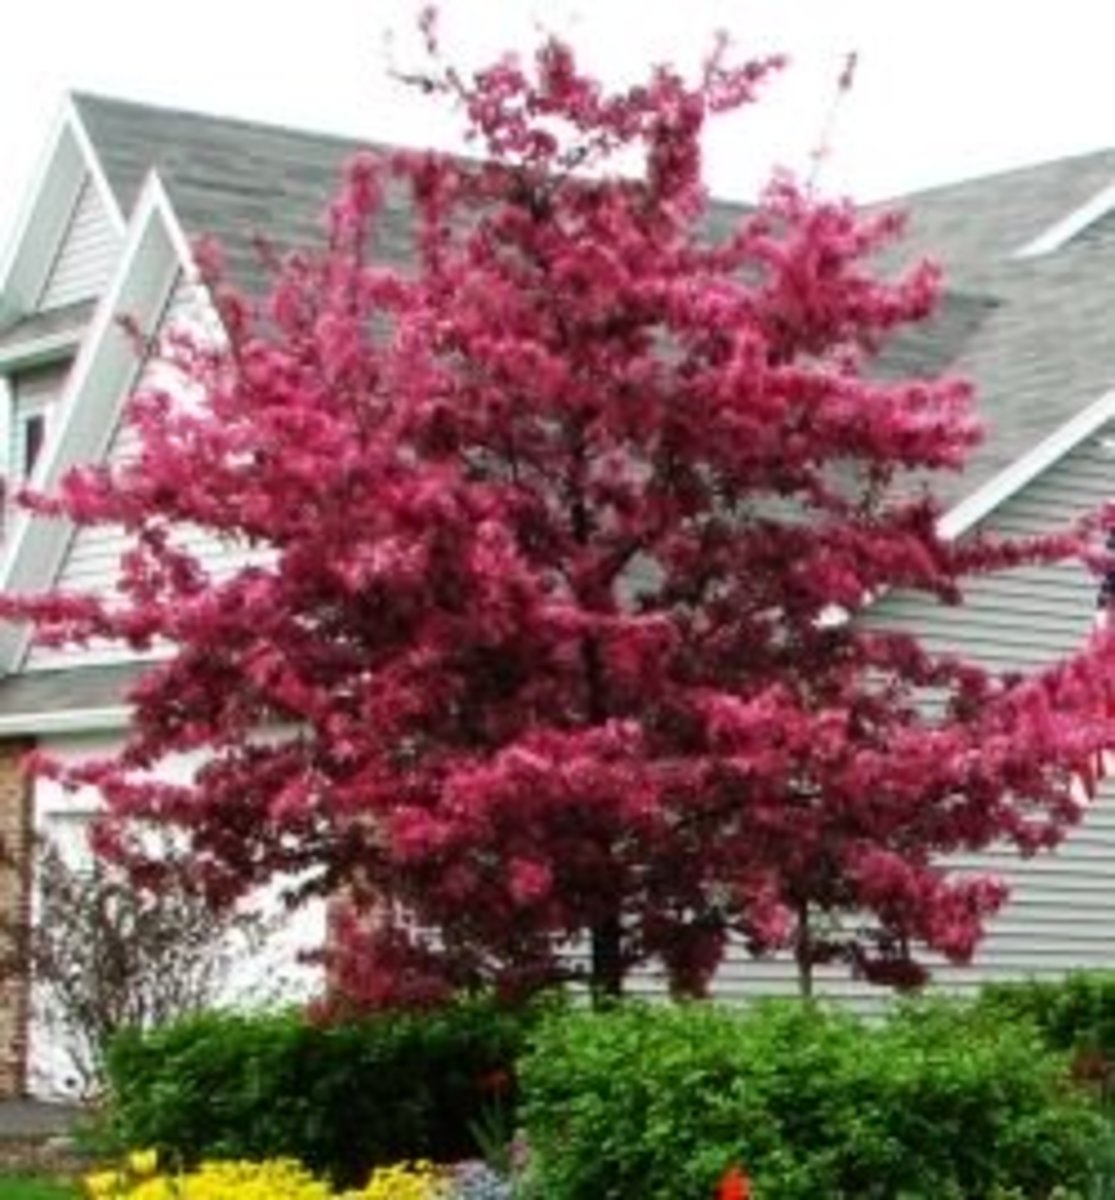 Flowering Crabapple Trees: Four Seasons of Beauty